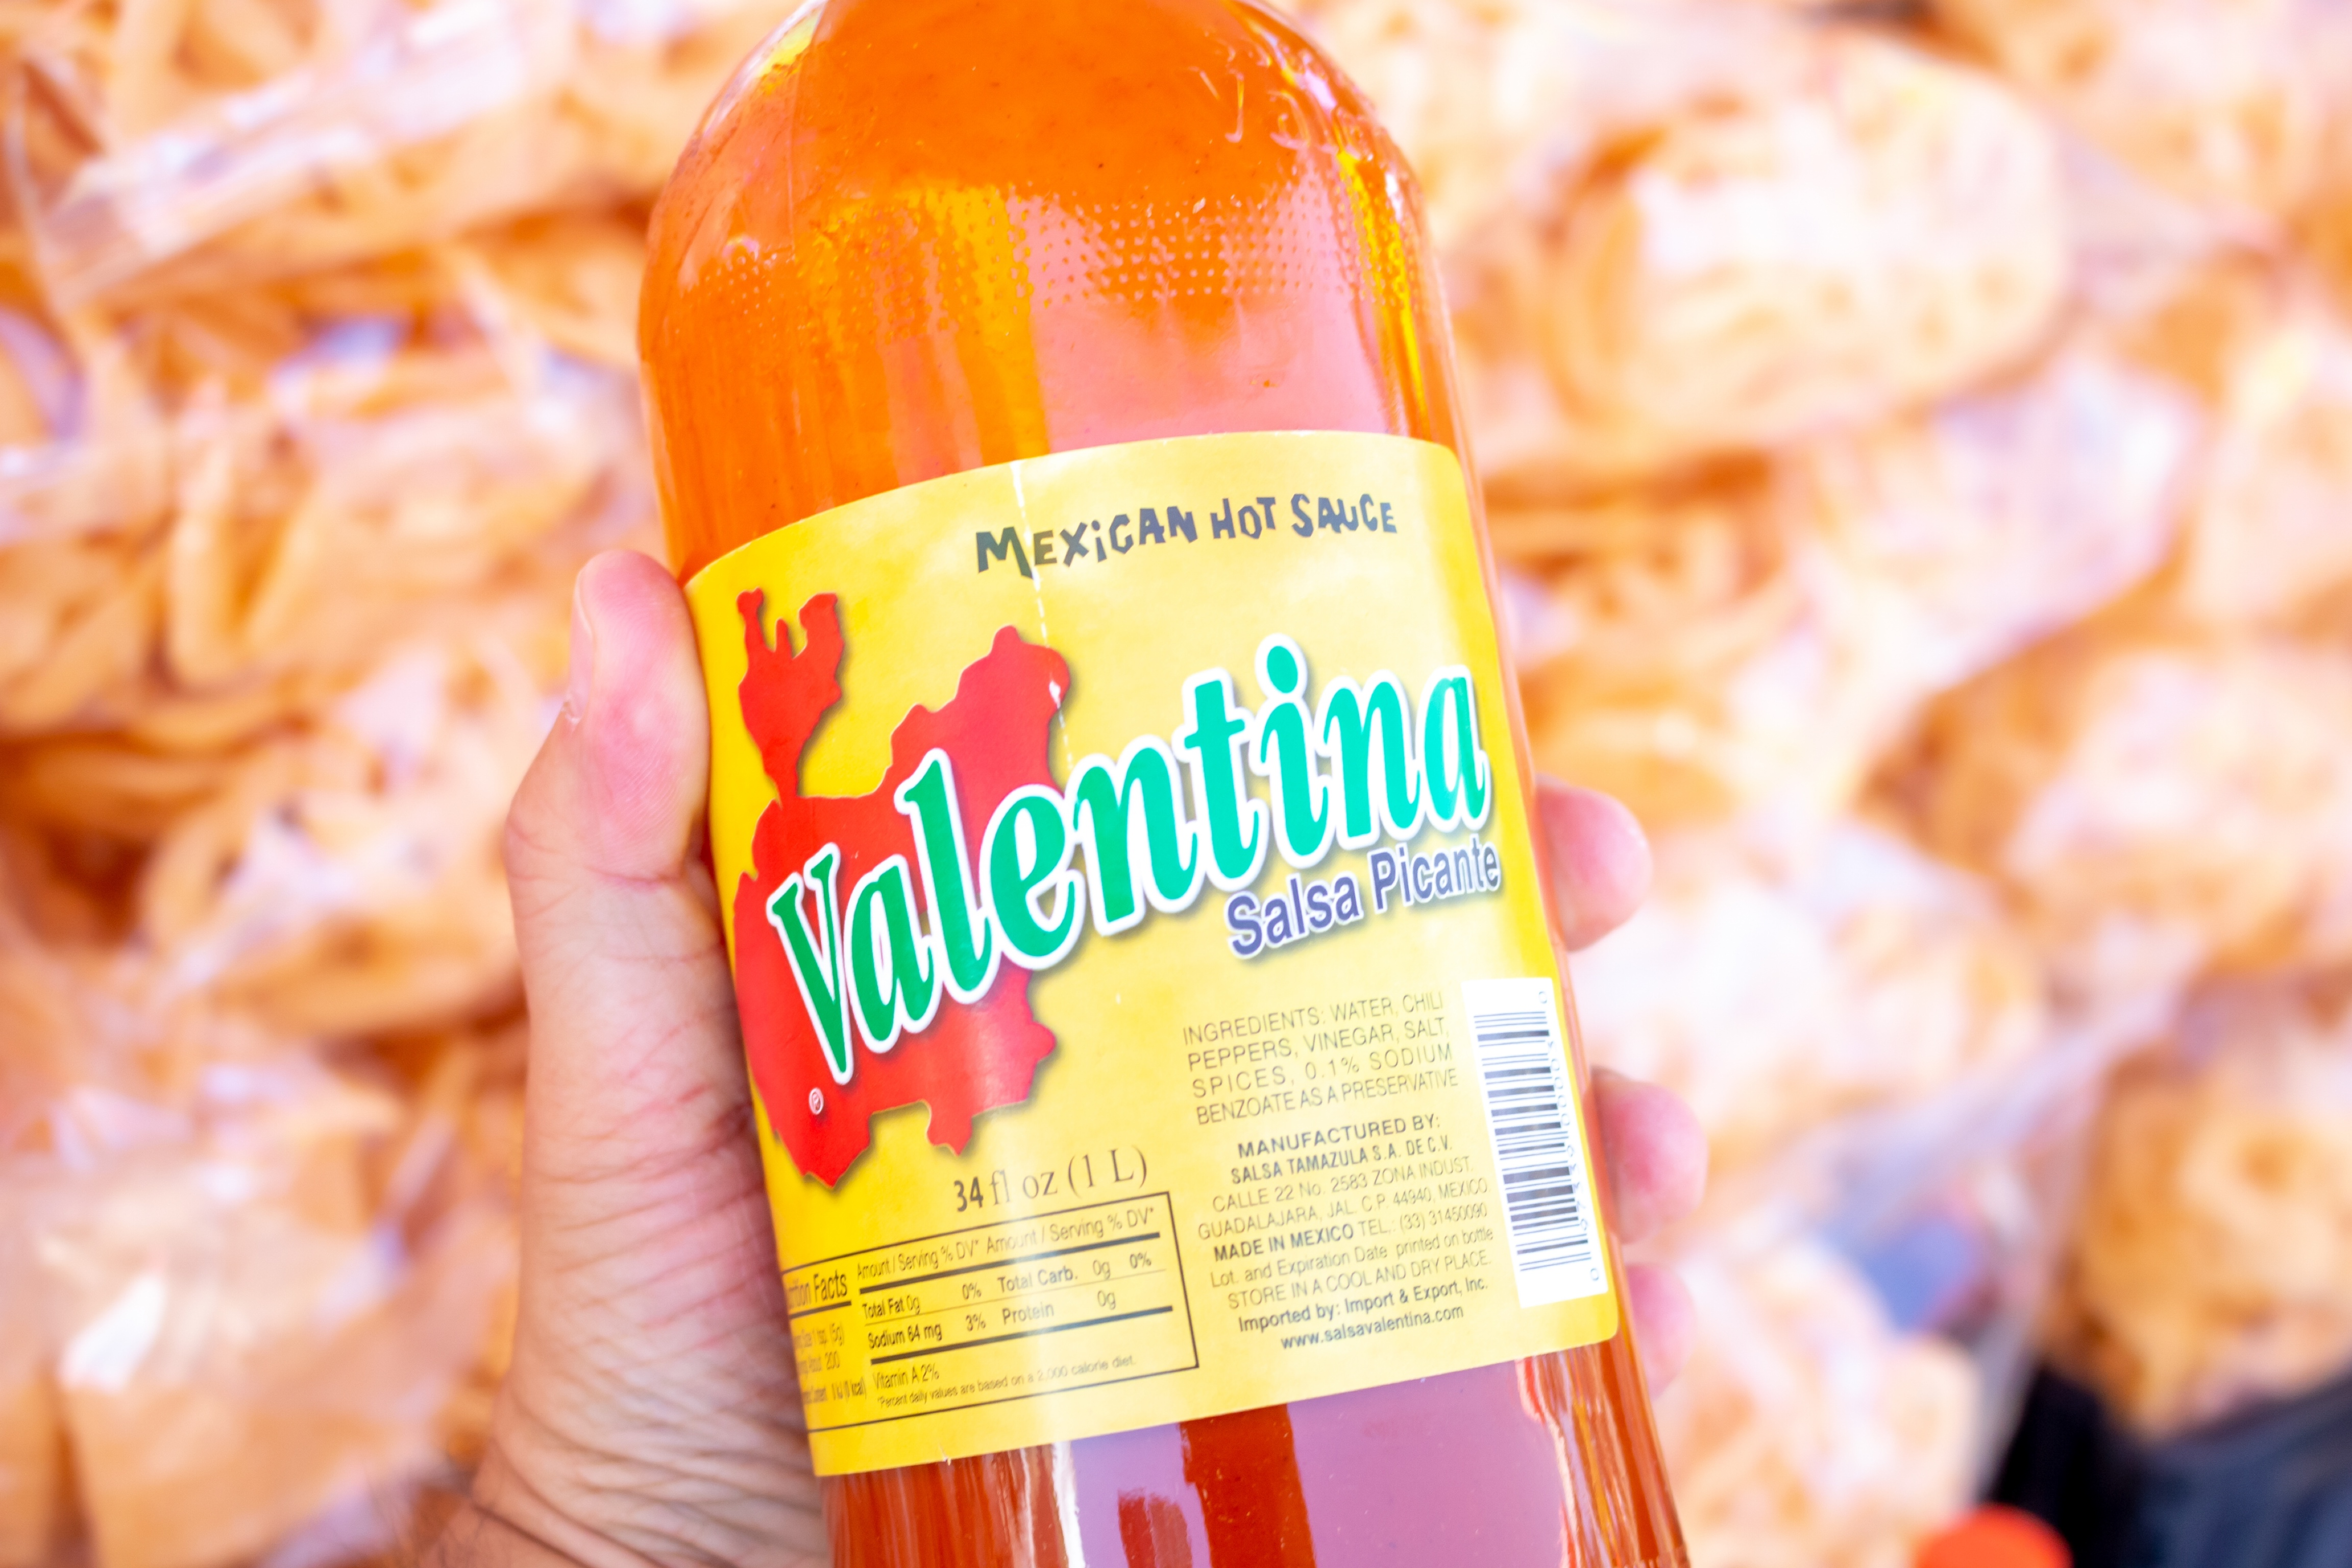 'Valentina' Hot Sauce Is Running Out Due To Shortage